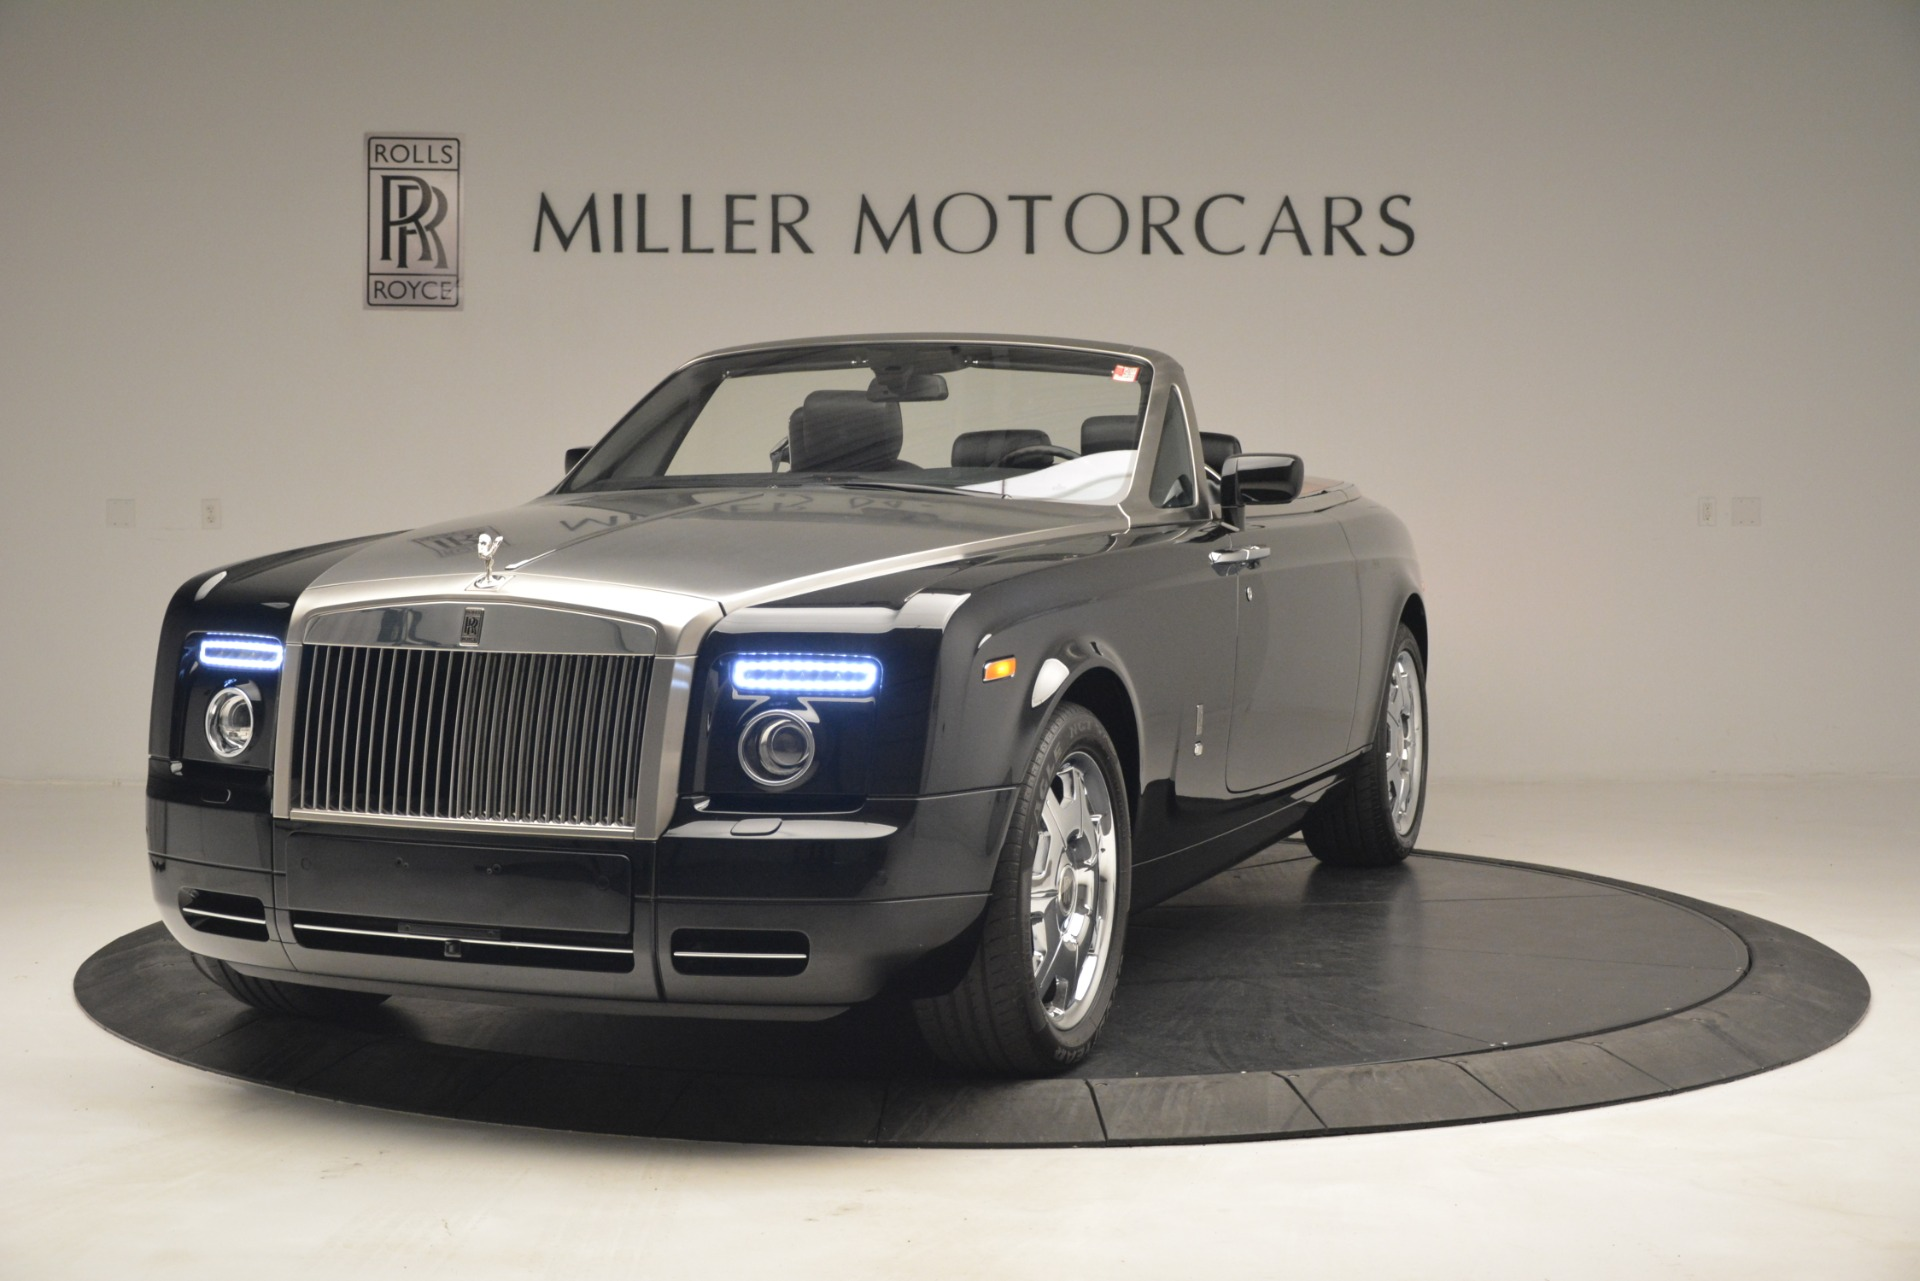 Used 2008 Rolls-Royce Phantom Drophead Coupe for sale Sold at Maserati of Westport in Westport CT 06880 1